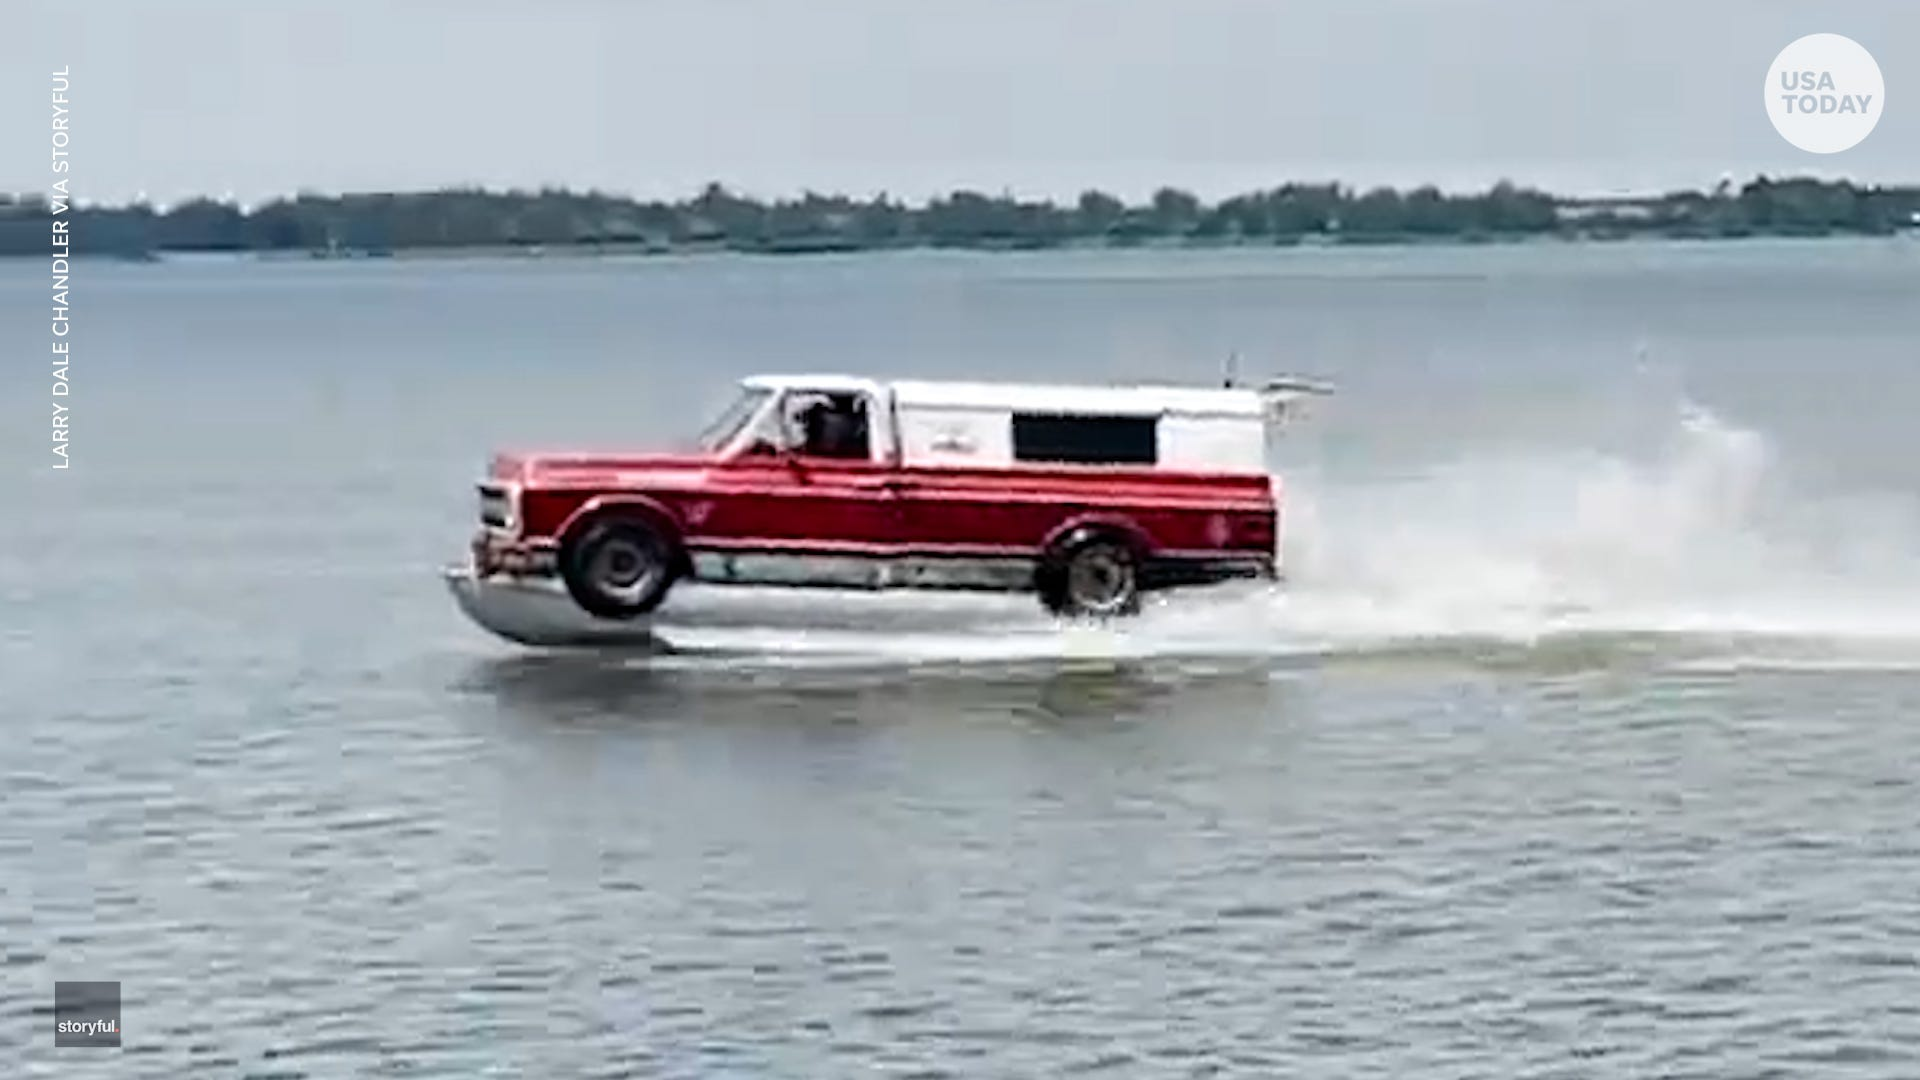 Boat that looks exactly like a pickup truck drives across water